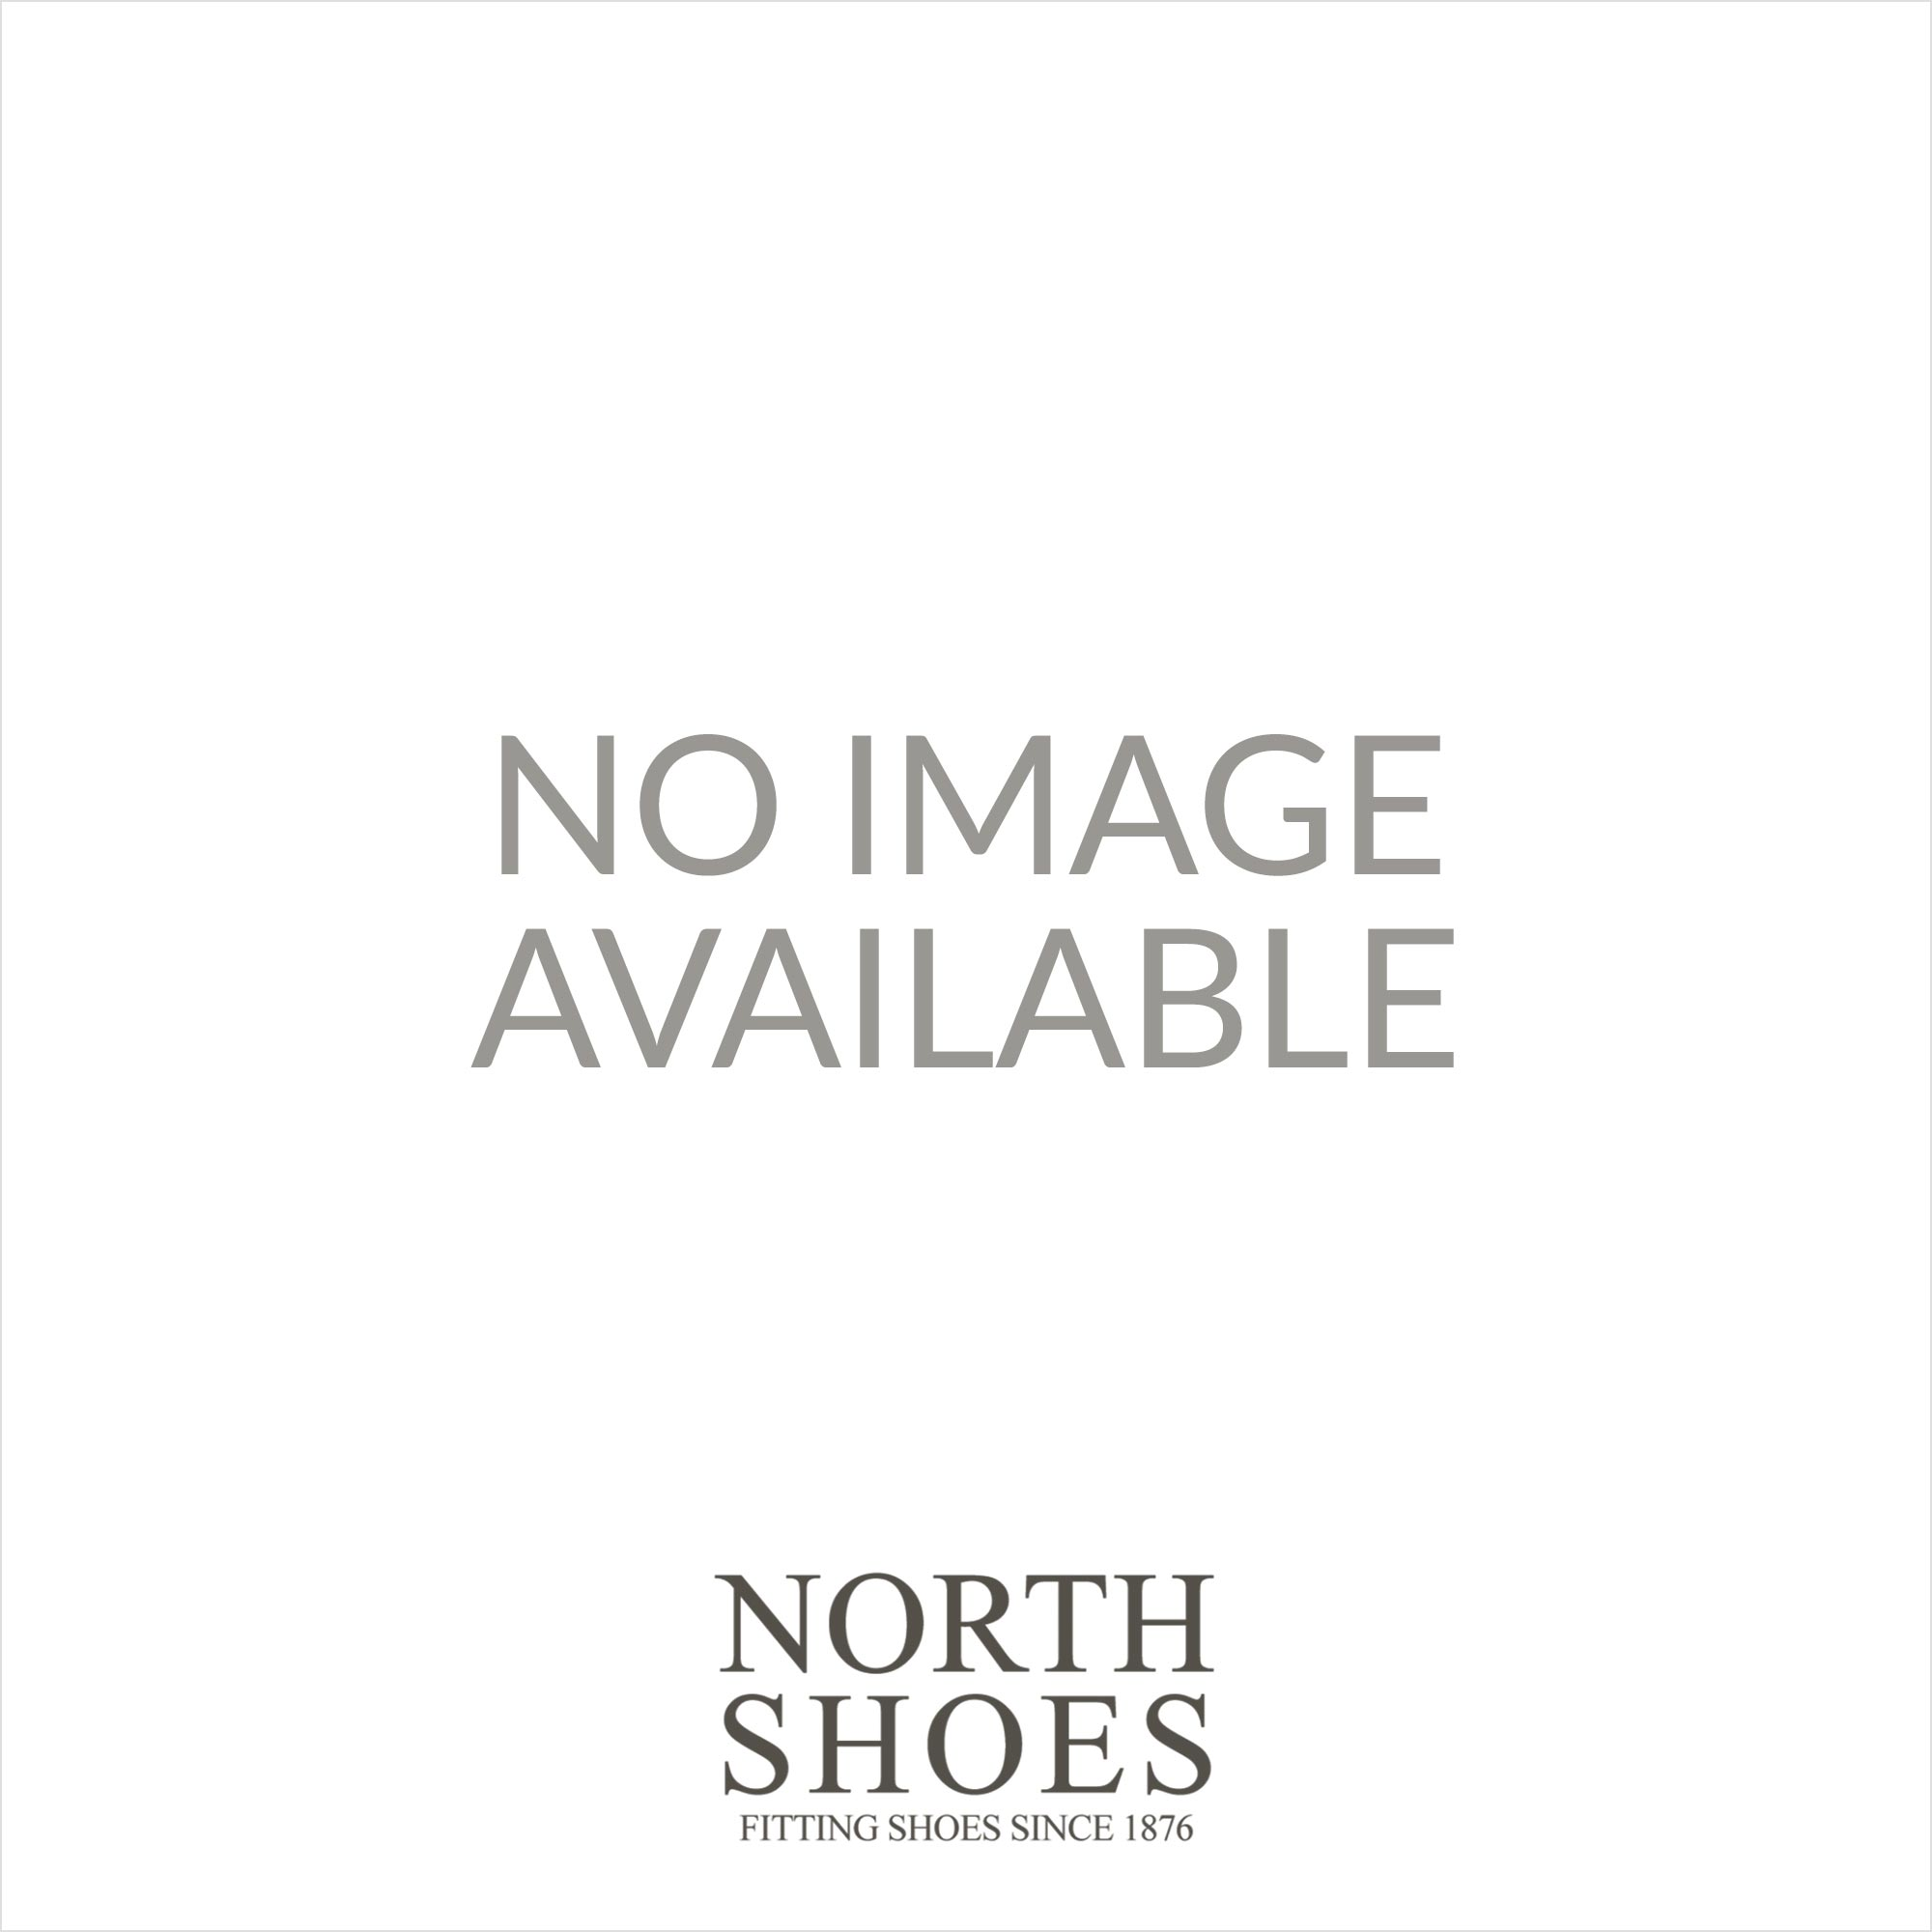 24 verified grinabelel.tk coupons and promo codes as of Dec 2. Popular now: Cyber Deal: Up to 75% Off at grinabelel.tk Trust grinabelel.tk for Shoes savings.